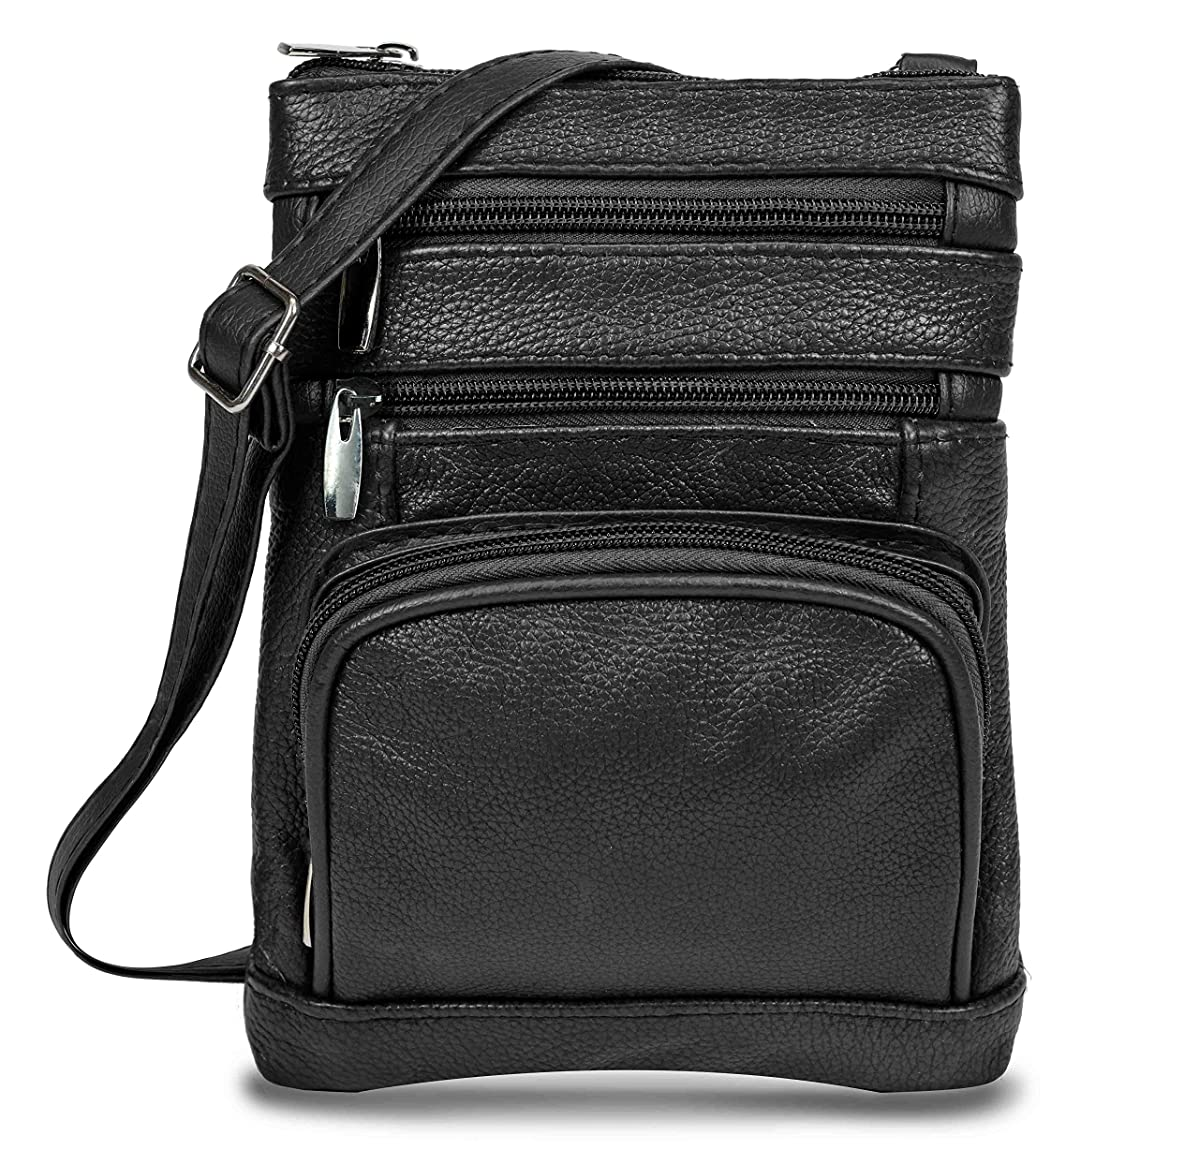 Maze Exclusive Women's Handbag Genuine Cross Body Purse Bag, Multi-Pocket, Black Crossbody Bags for Women, Small/Medium Crossover Purses and Messenger Handbags- (Black)